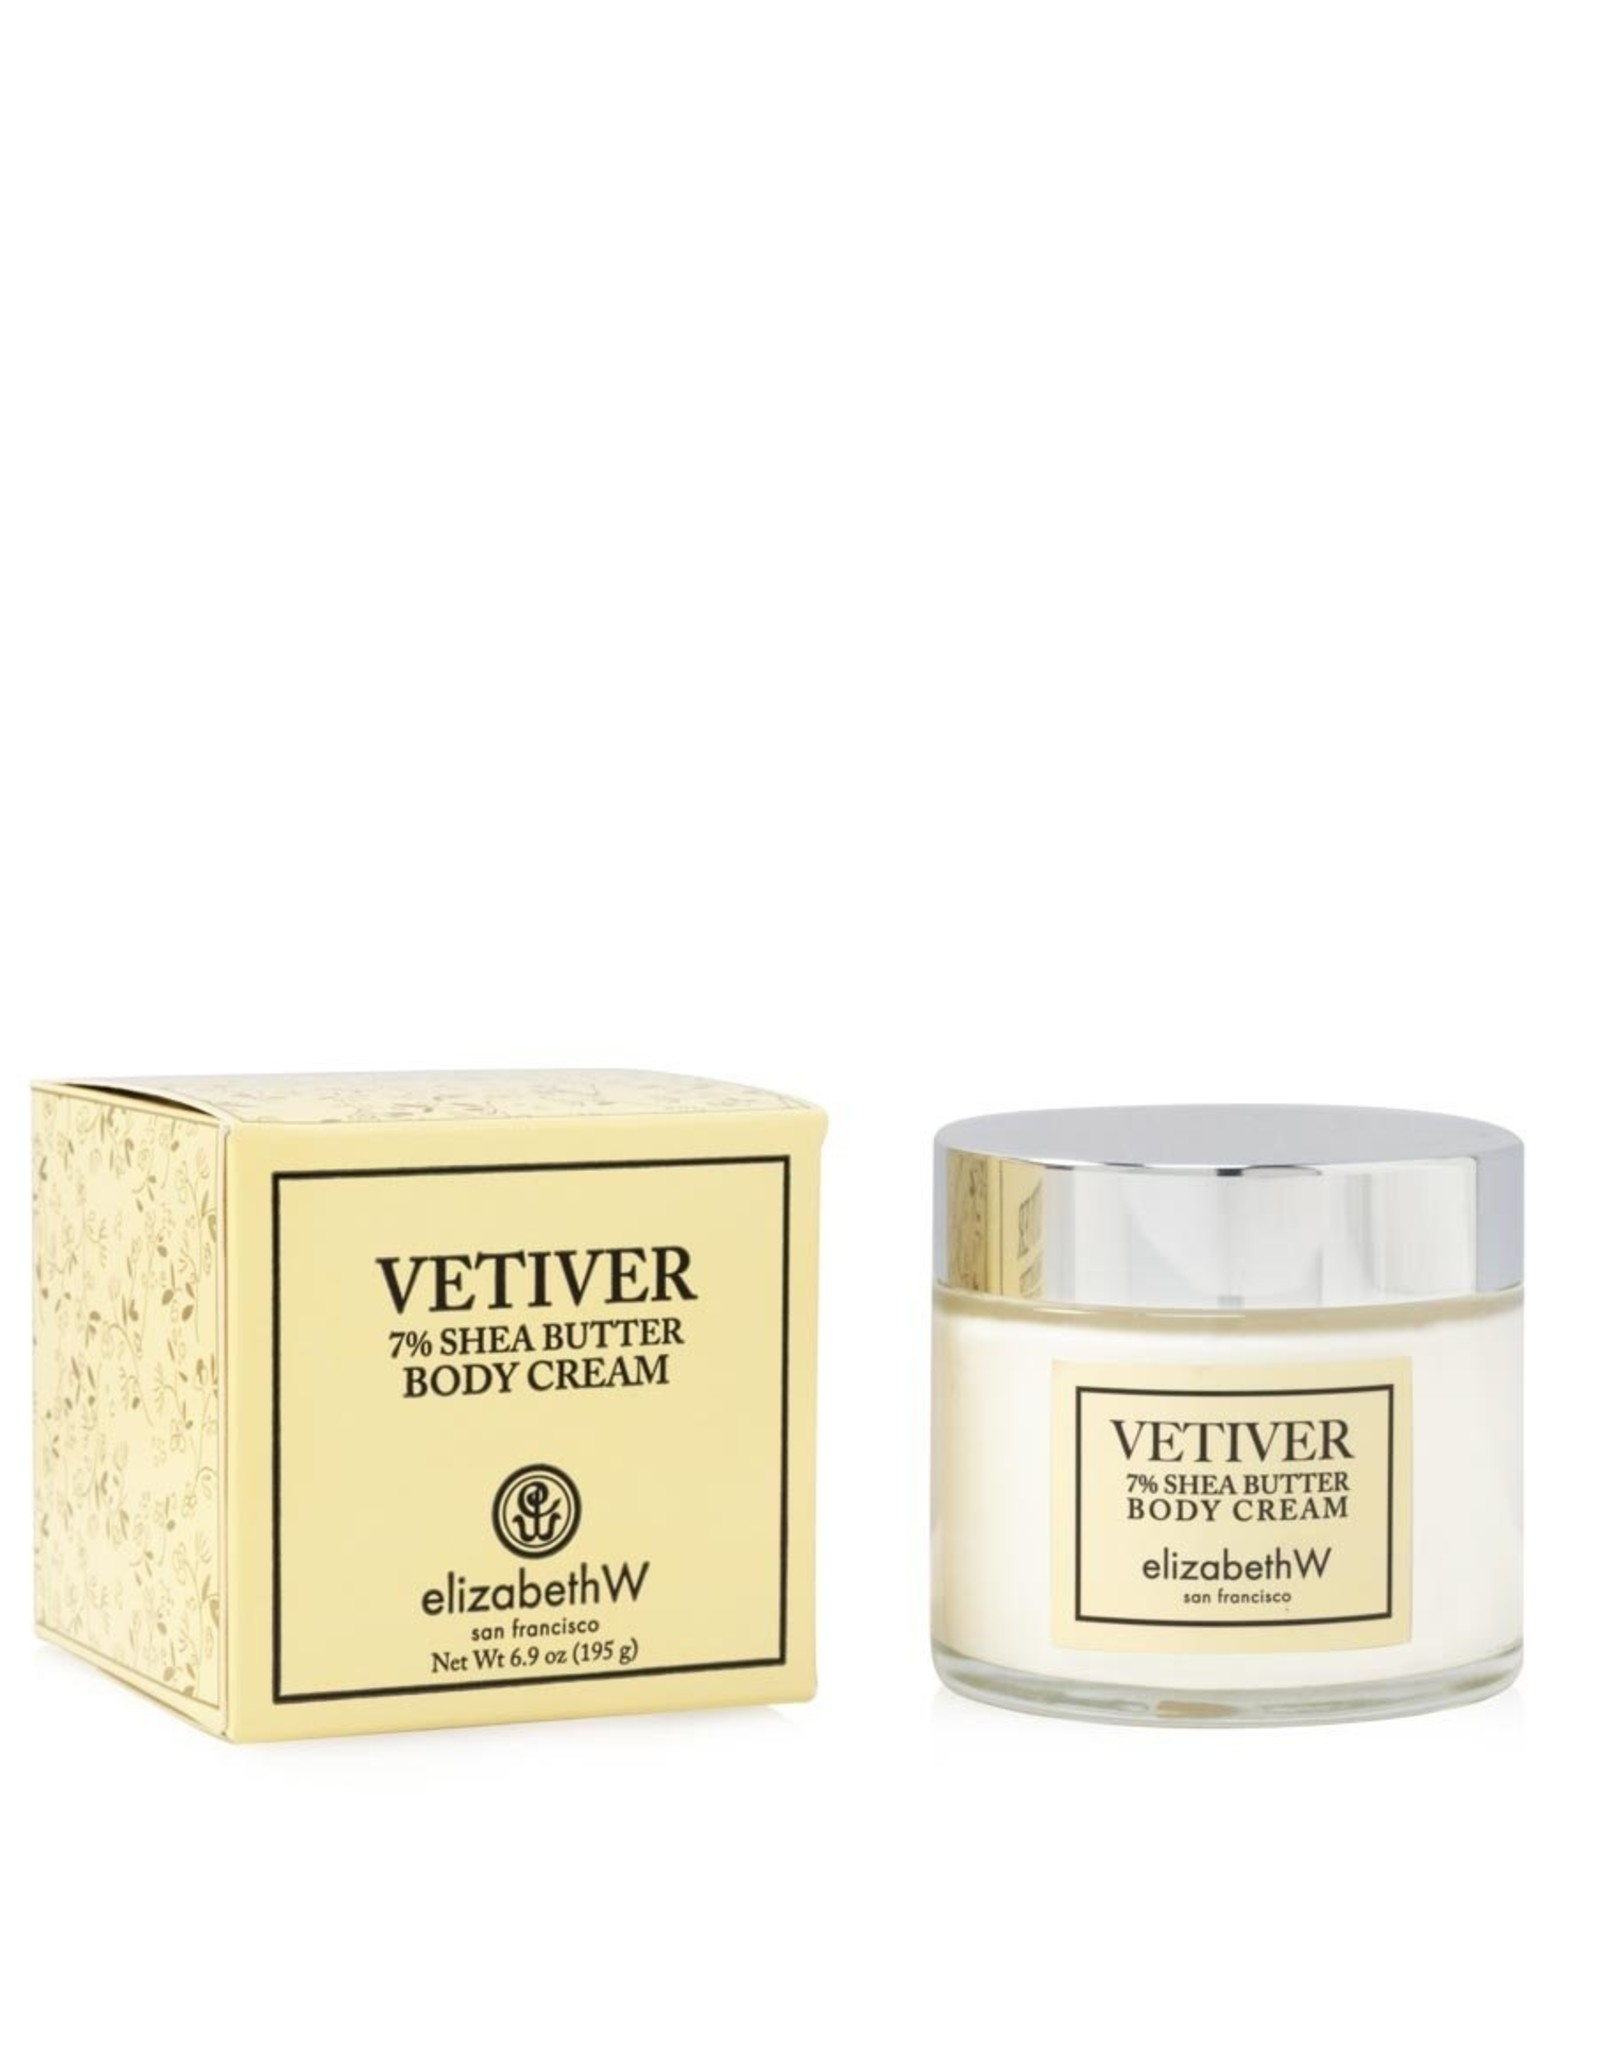 Elizabeth W Vetiver Body Creme Jar 6.75 fl. oz.